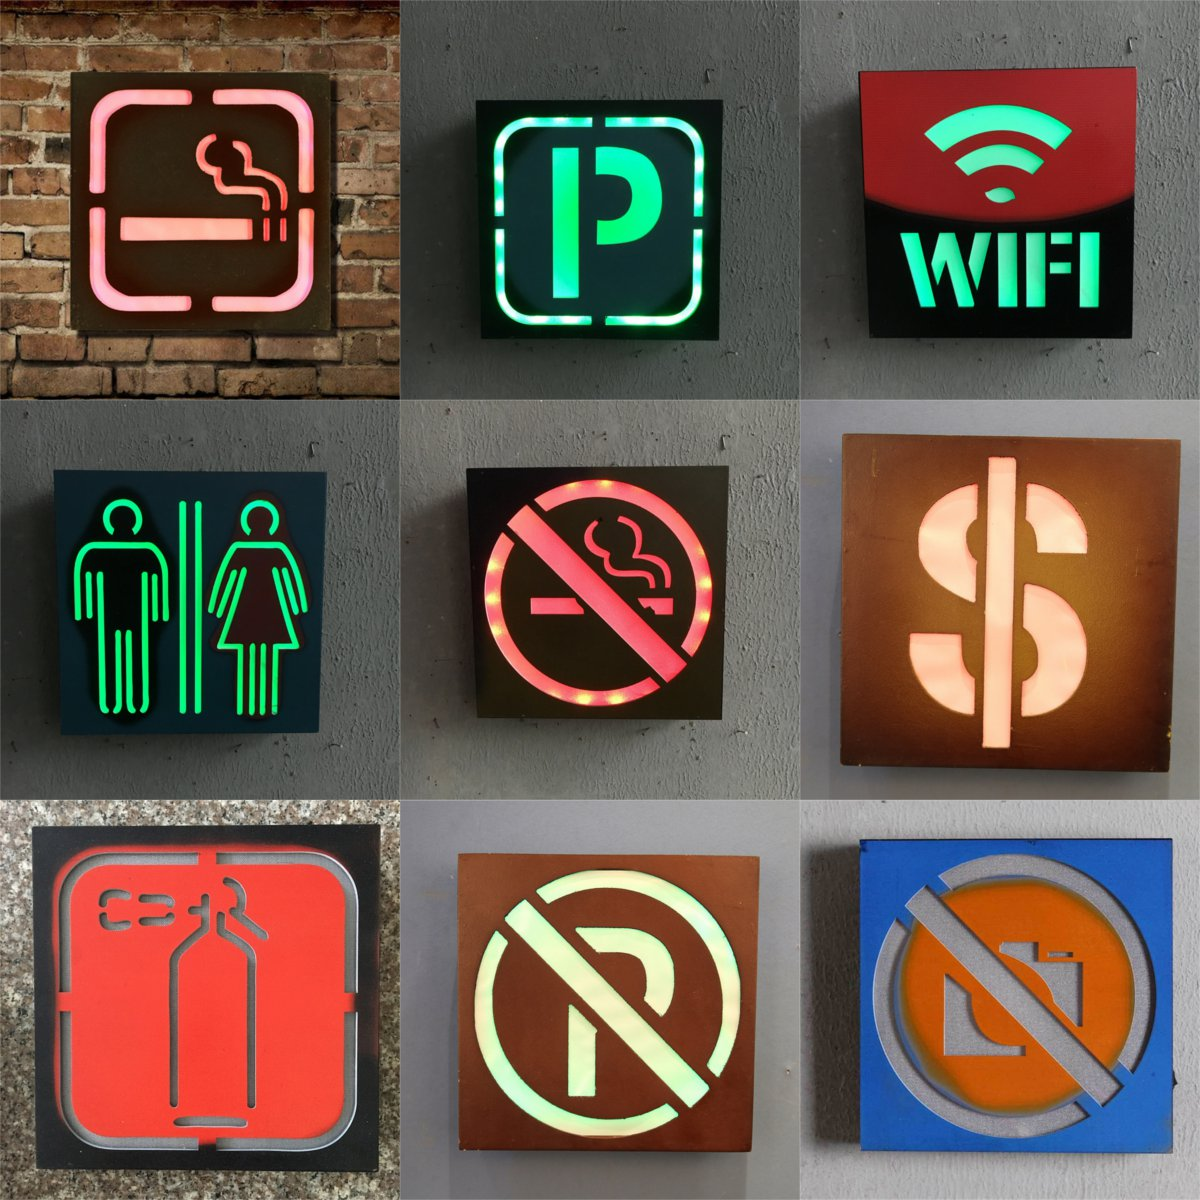 LED MDF Sign Light Retro Plaque Poster Bar Pub Home Wall Decoration Battery Powered Light Box Board Commercial Lighting 24x24cm